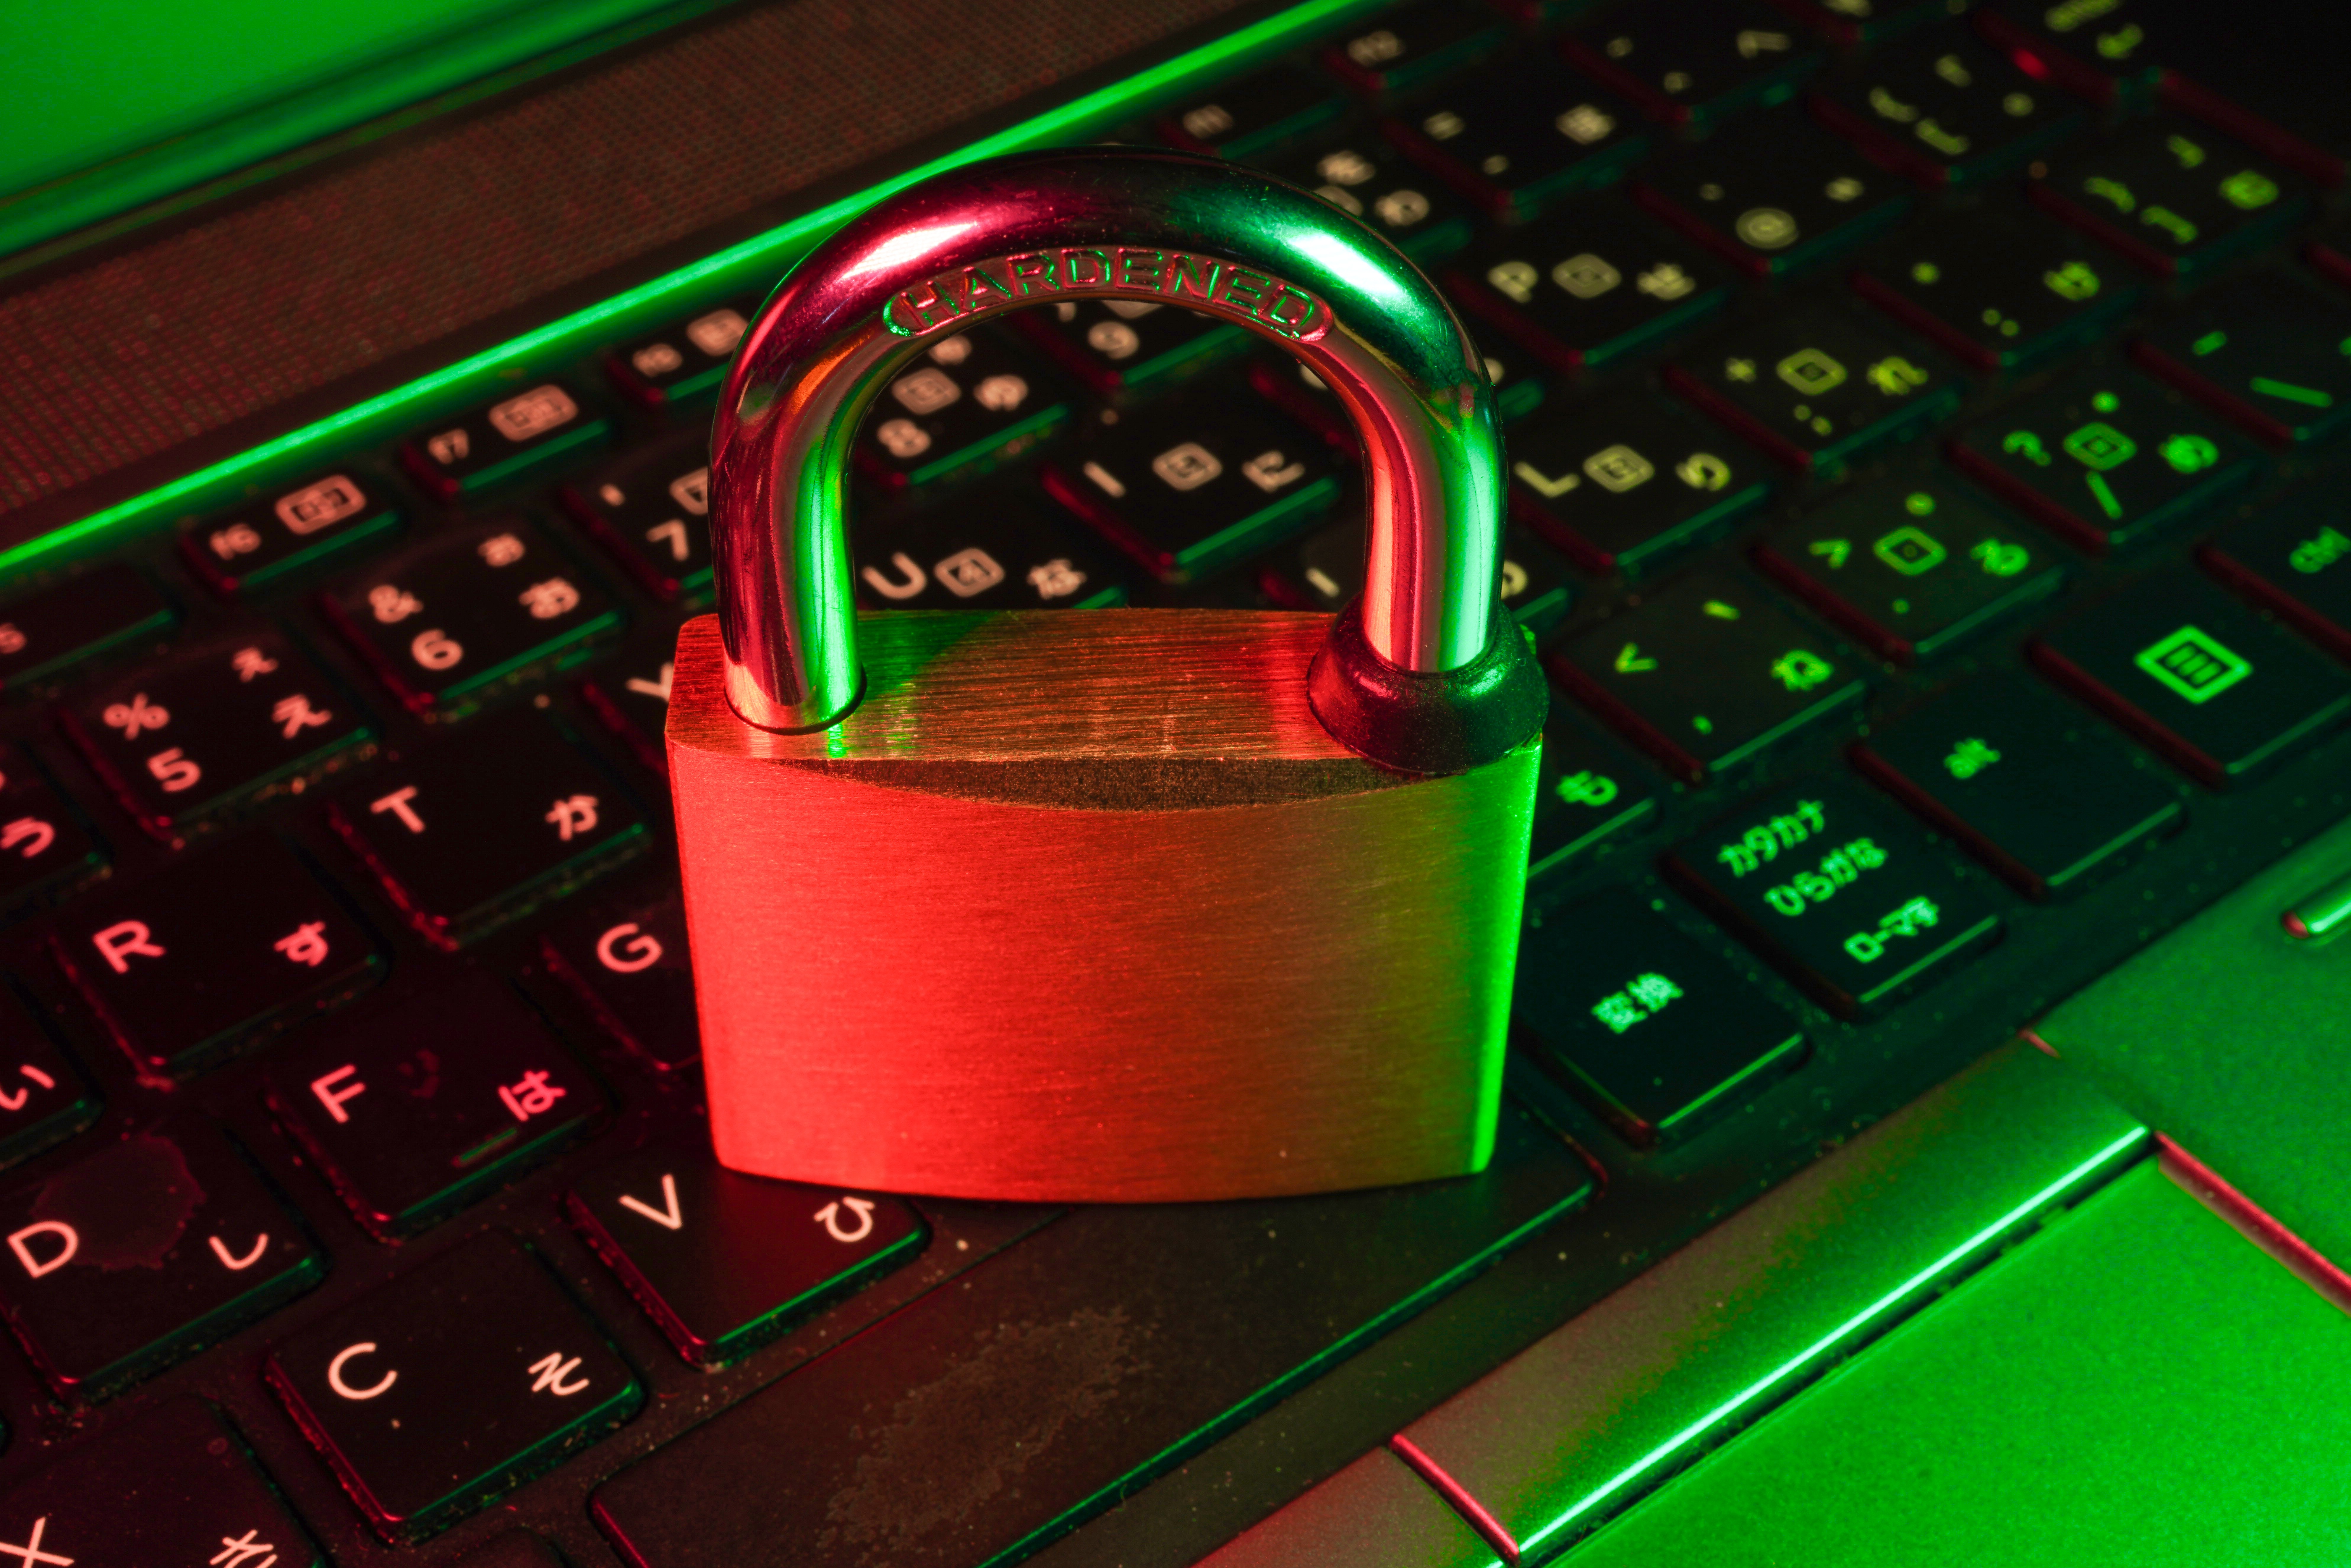 How To Not Let Cyberattacks Get The Better Of Your Small Business